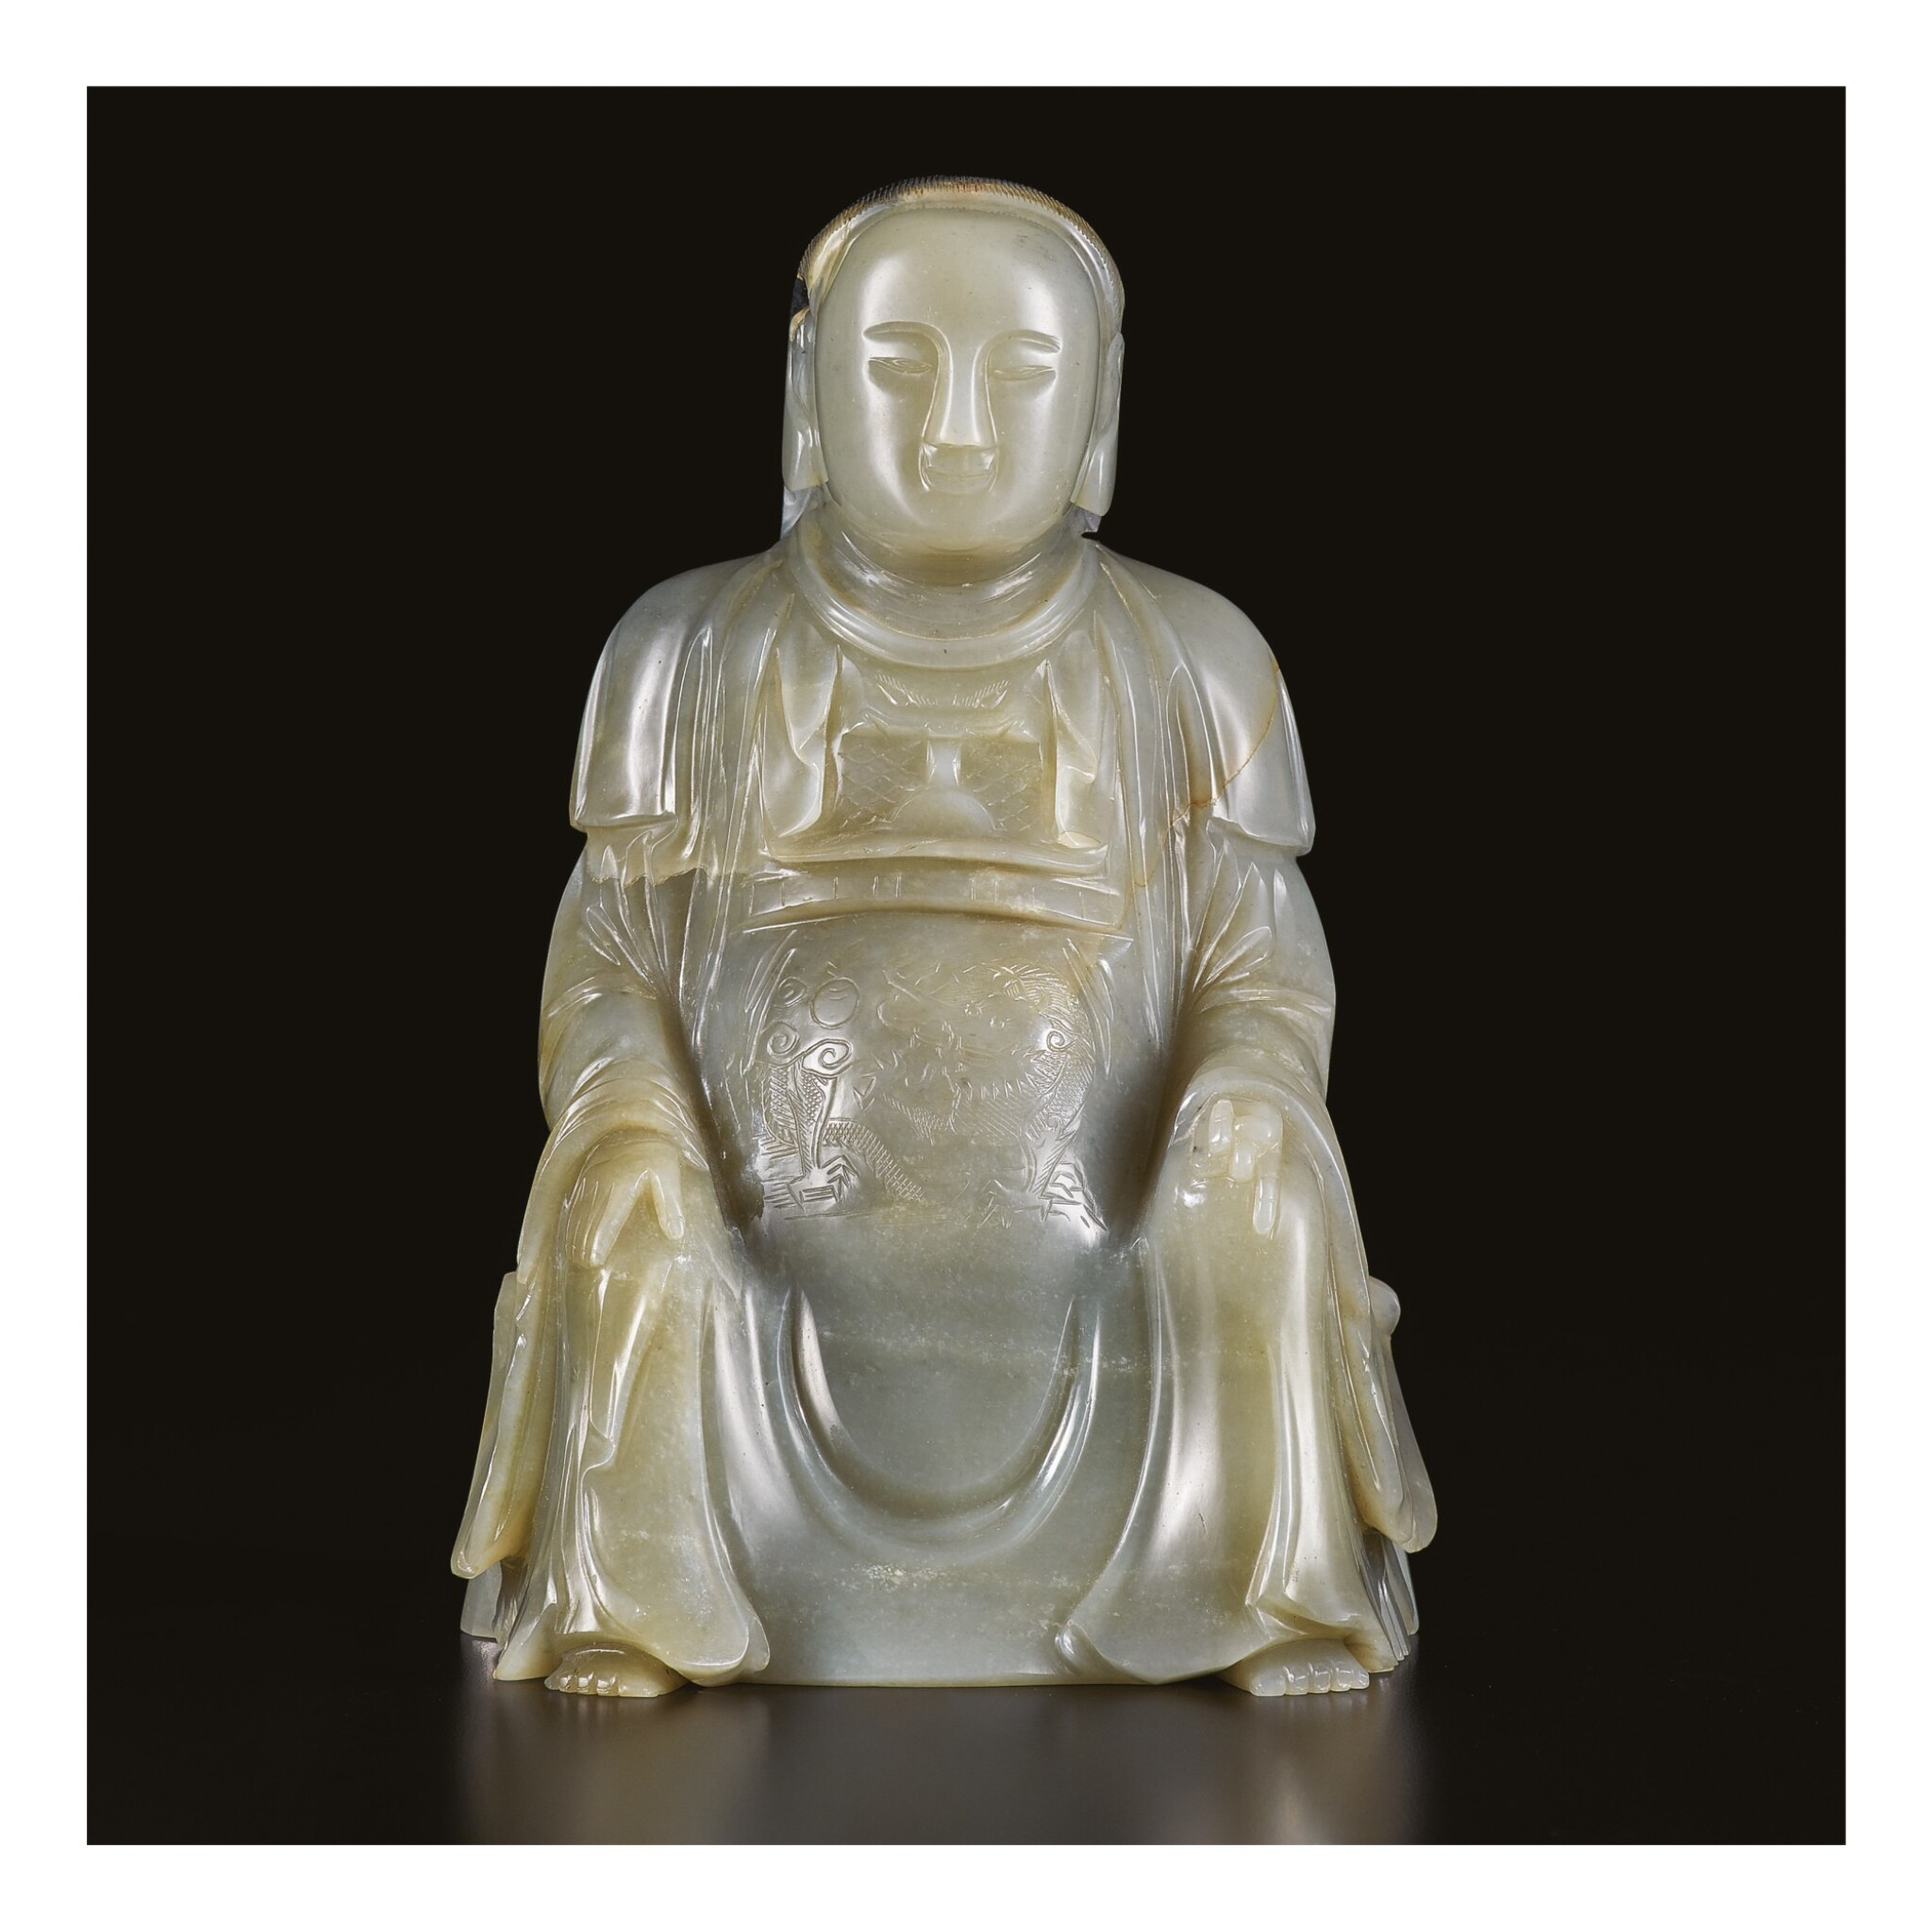 View 1 of Lot 646. AN EXTREMELY RARE CARVED GREY JADE FIGURE OF ZHENWU, MING DYNASTY, HONGZHI PERIOD, DATED TO THE EIGHTH YEAR, CORRESPONDING TO 1495.